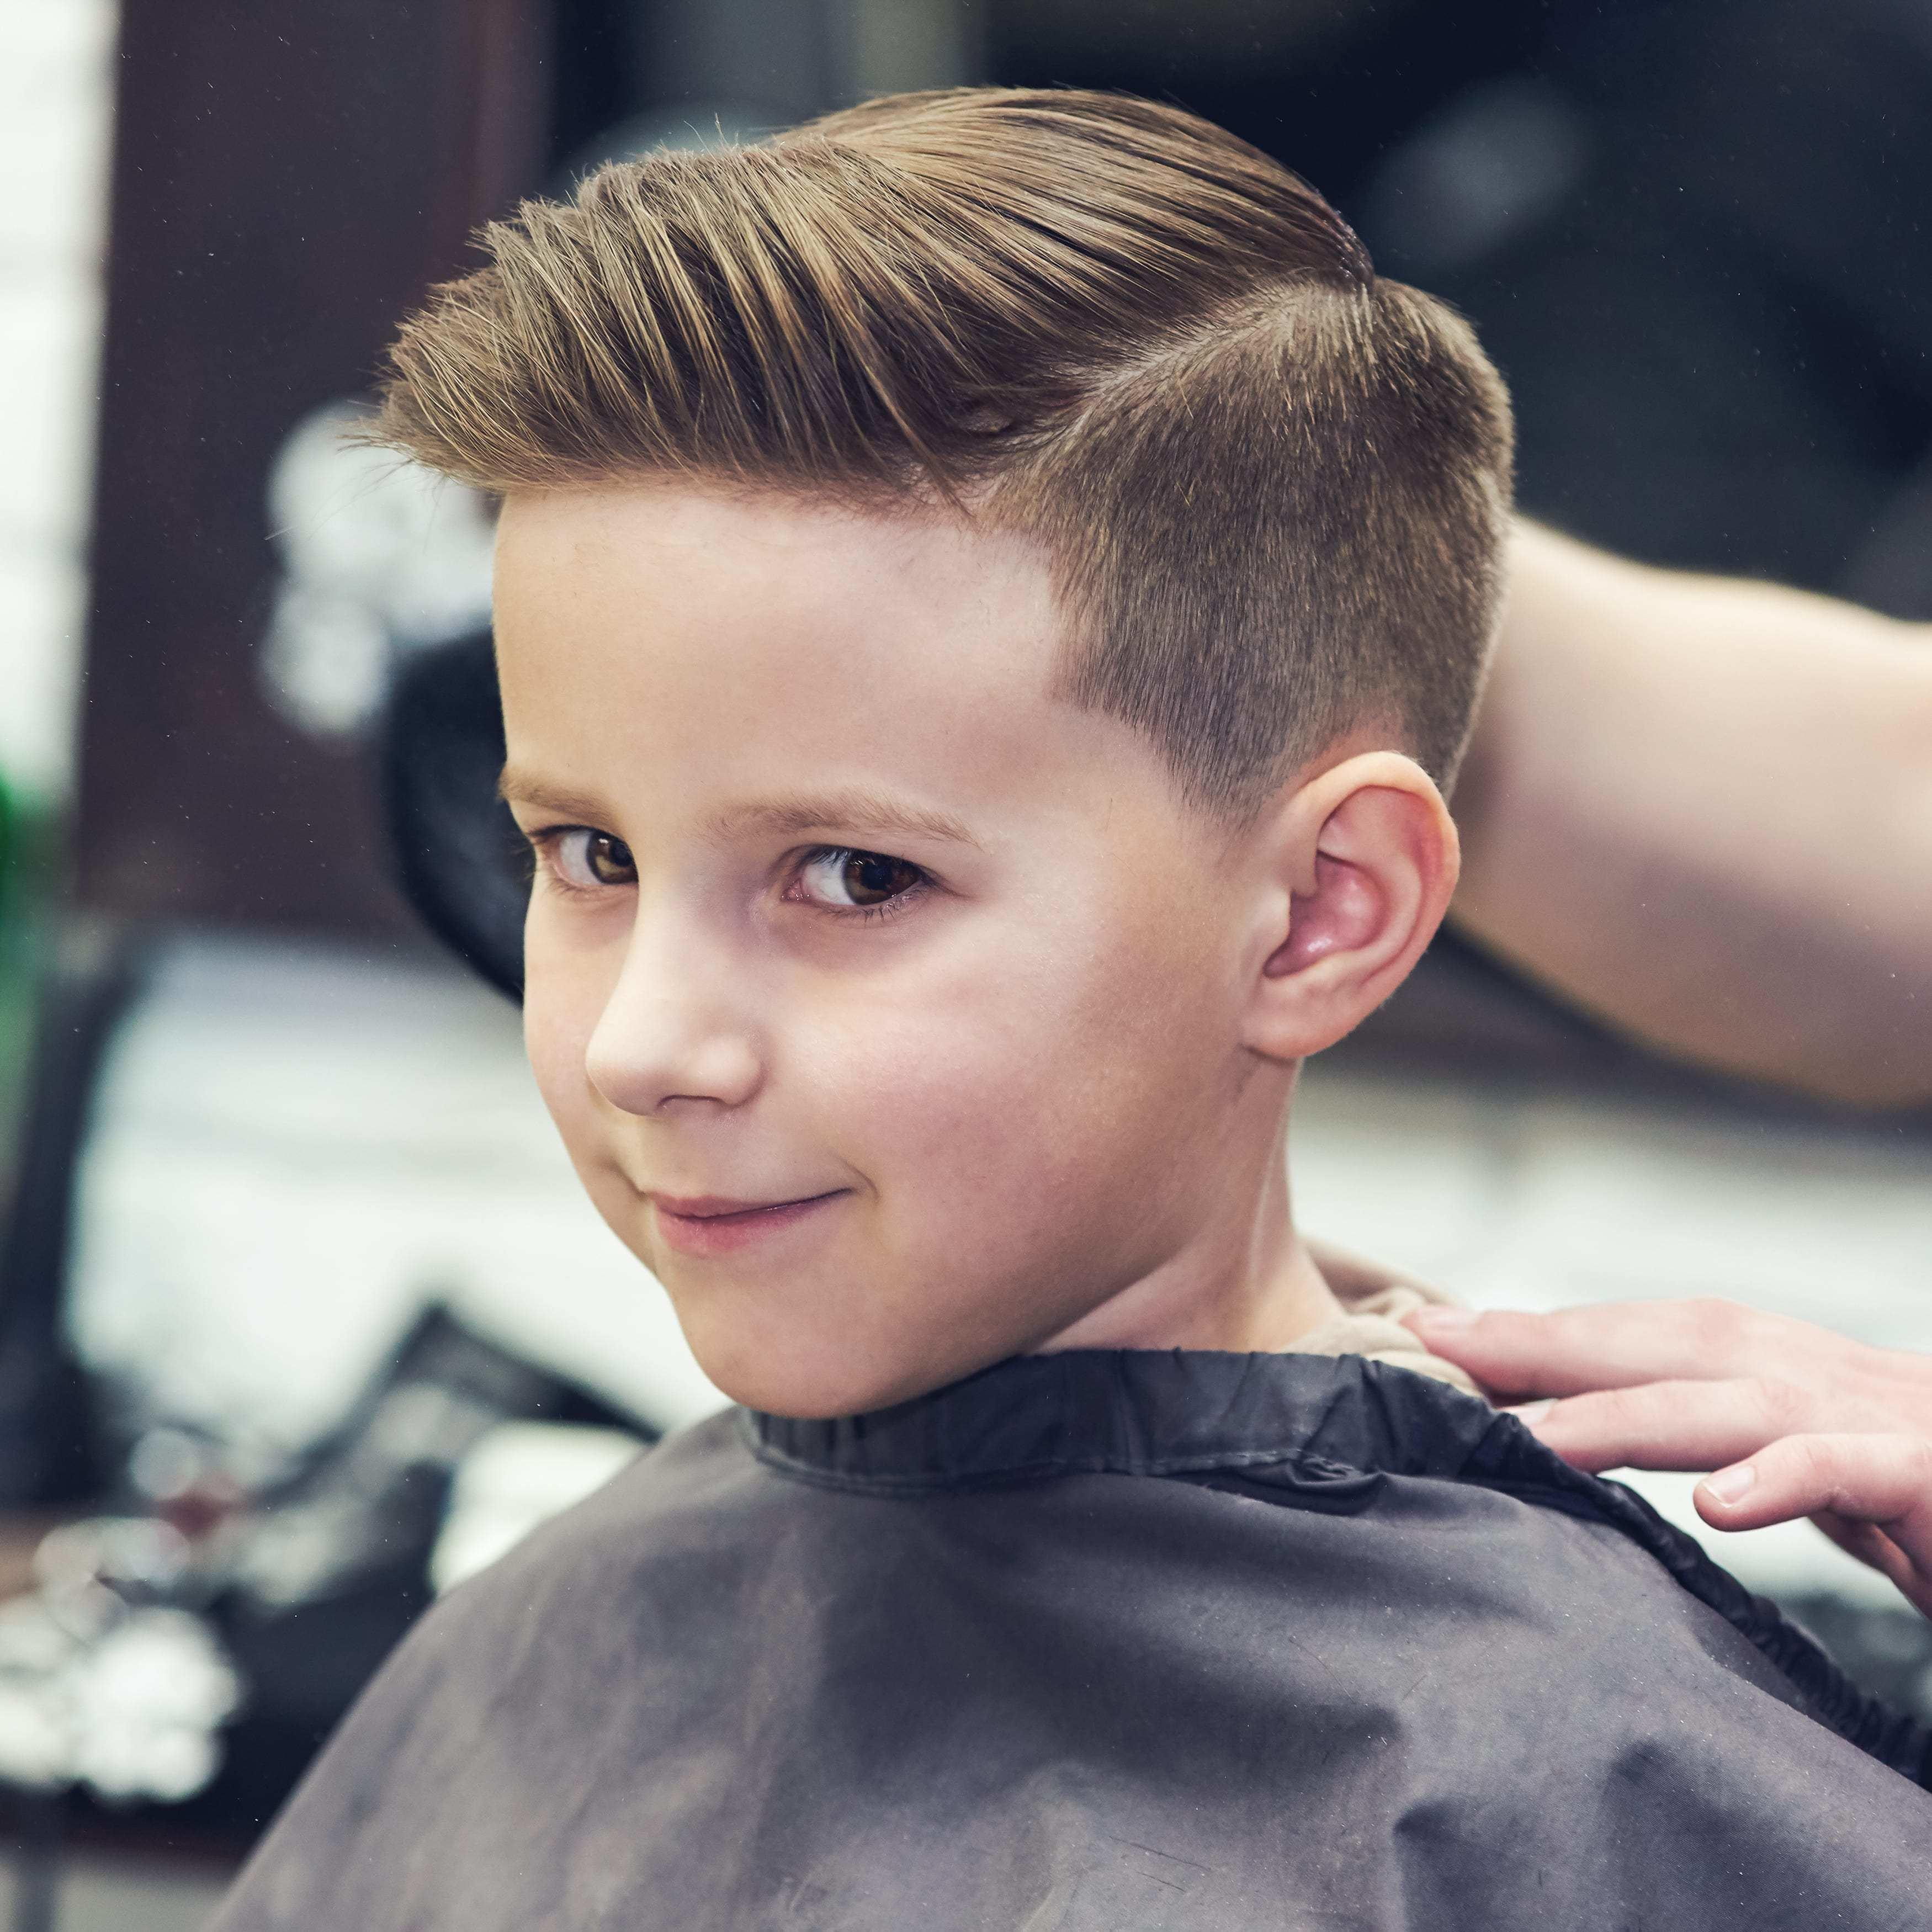 The Best 40 Excellent School Haircuts For Boys Styling Tips Pictures